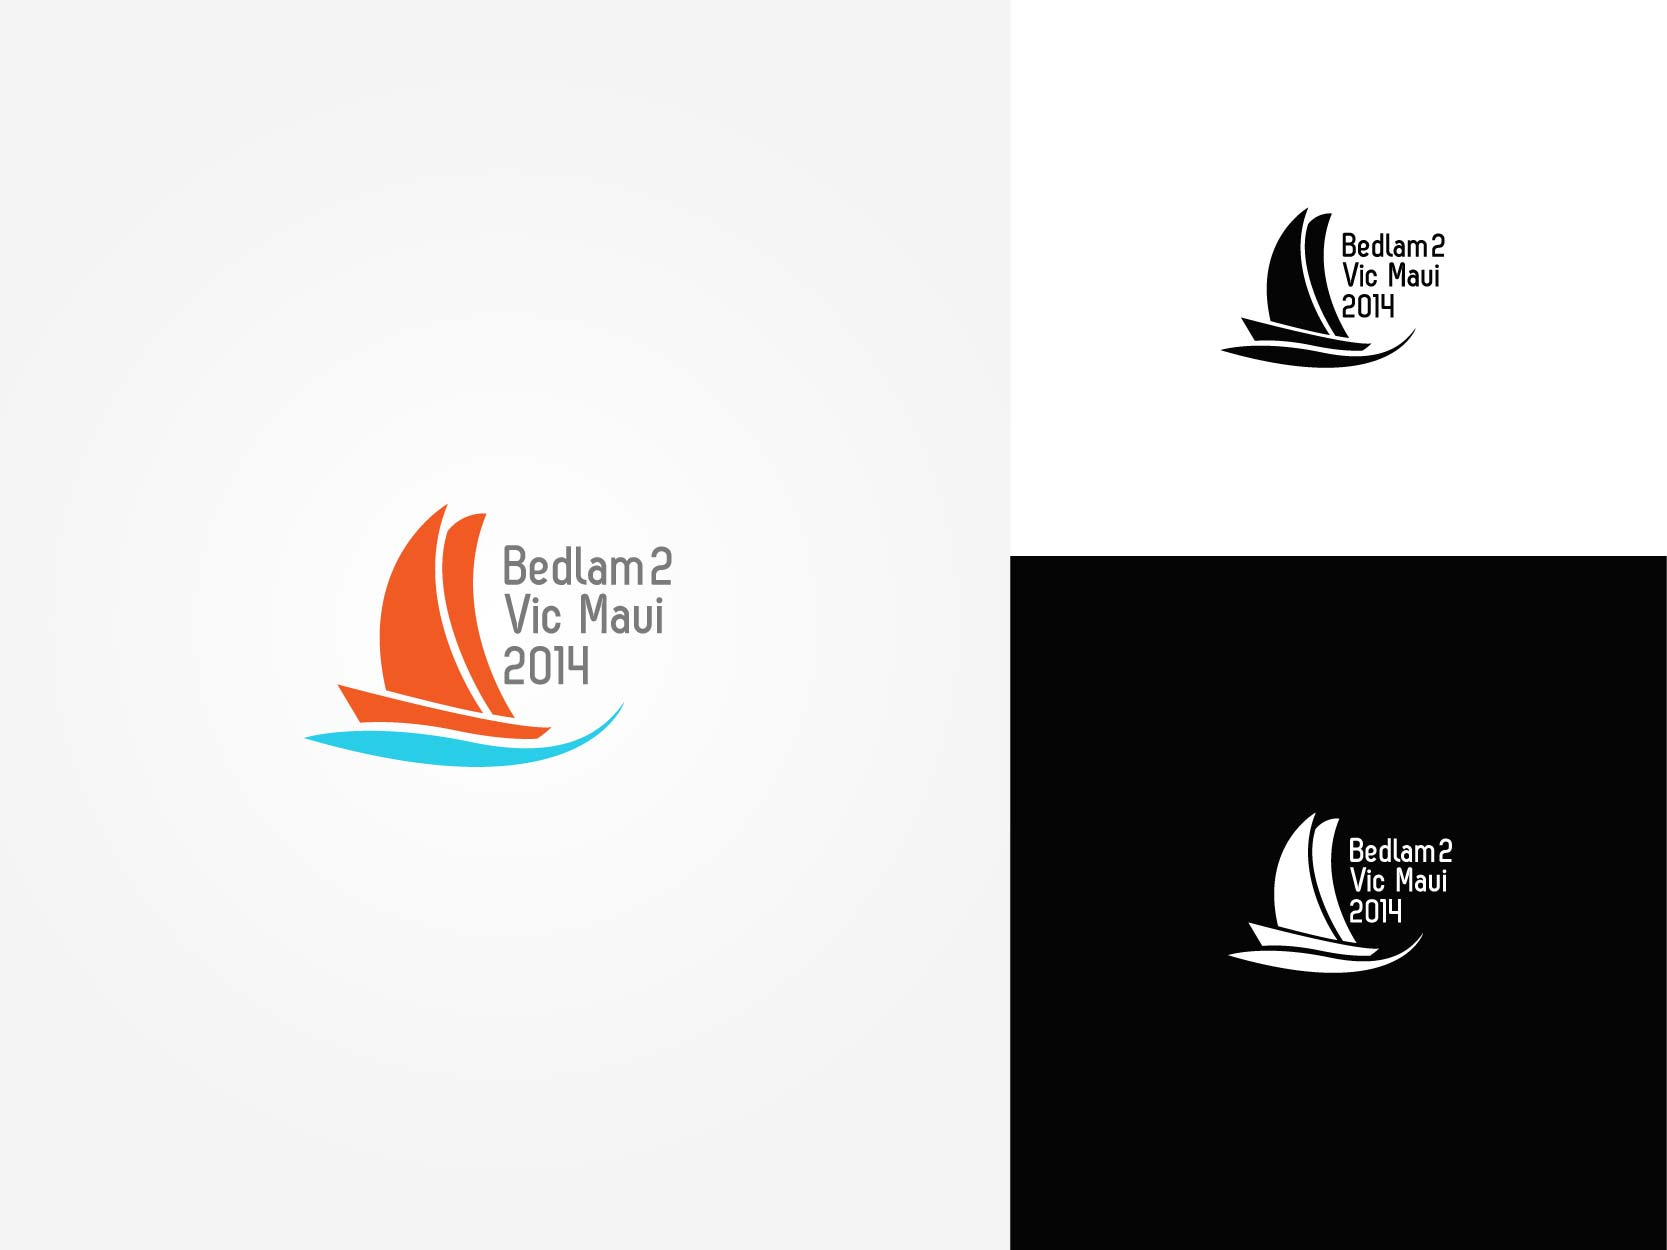 Logo Design by Osi Indra - Entry No. 40 in the Logo Design Contest Artistic Logo Design for Bedlam 2  Vic-Maui 2014.